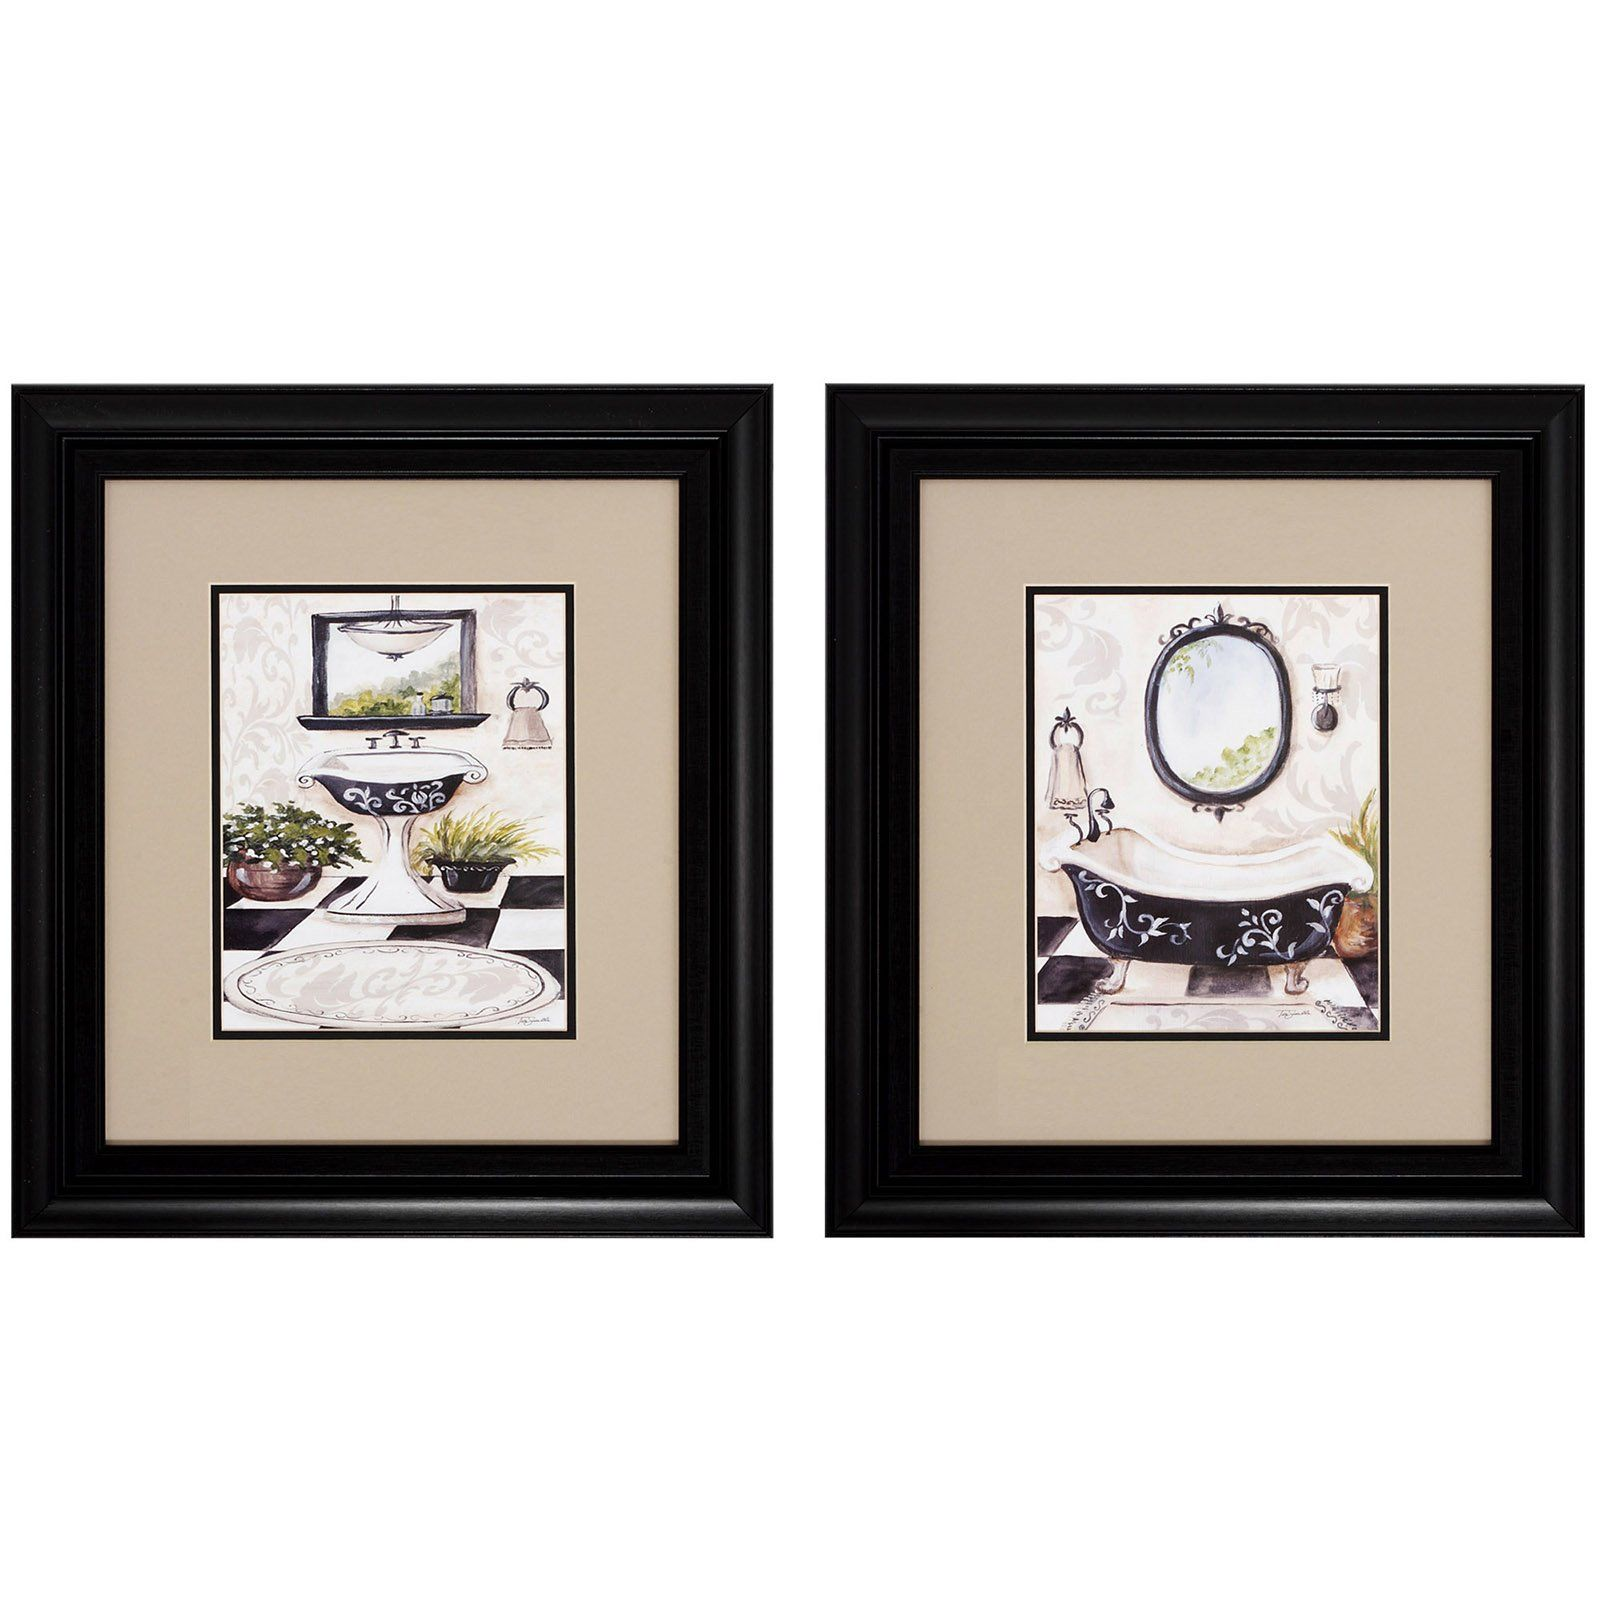 Have To Have It Black And White Bathroom Framed Wall Art Set Of 2 17w X 19h In Ea 59 Painting Frames Framed Wall Art Sets Bathroom Art